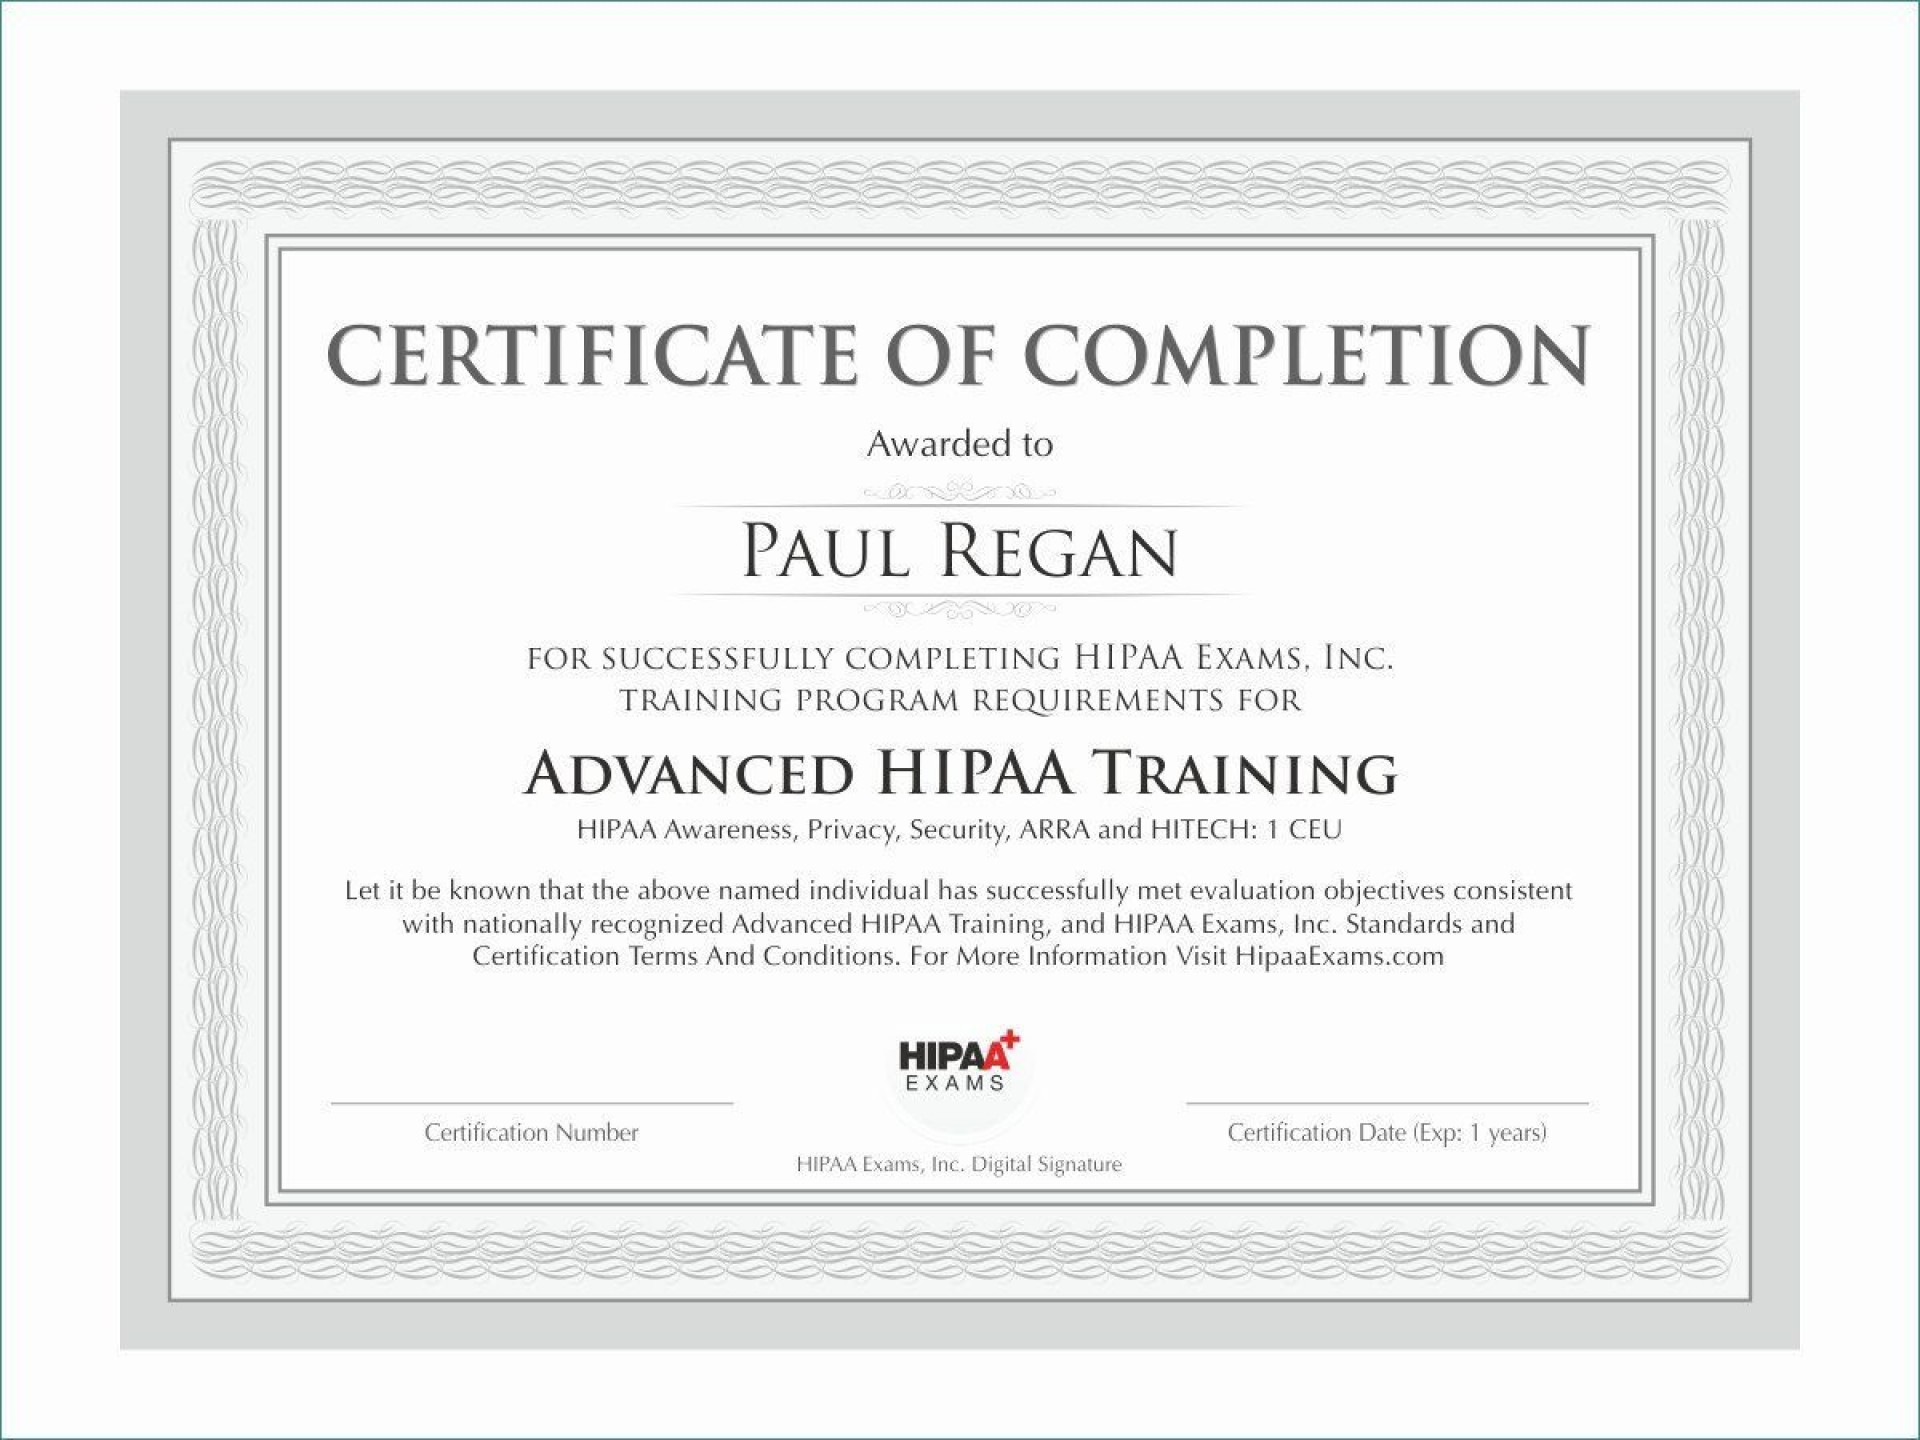 009 Staggering Certificate Of Completion Template Free Sample  Training Download Word1920